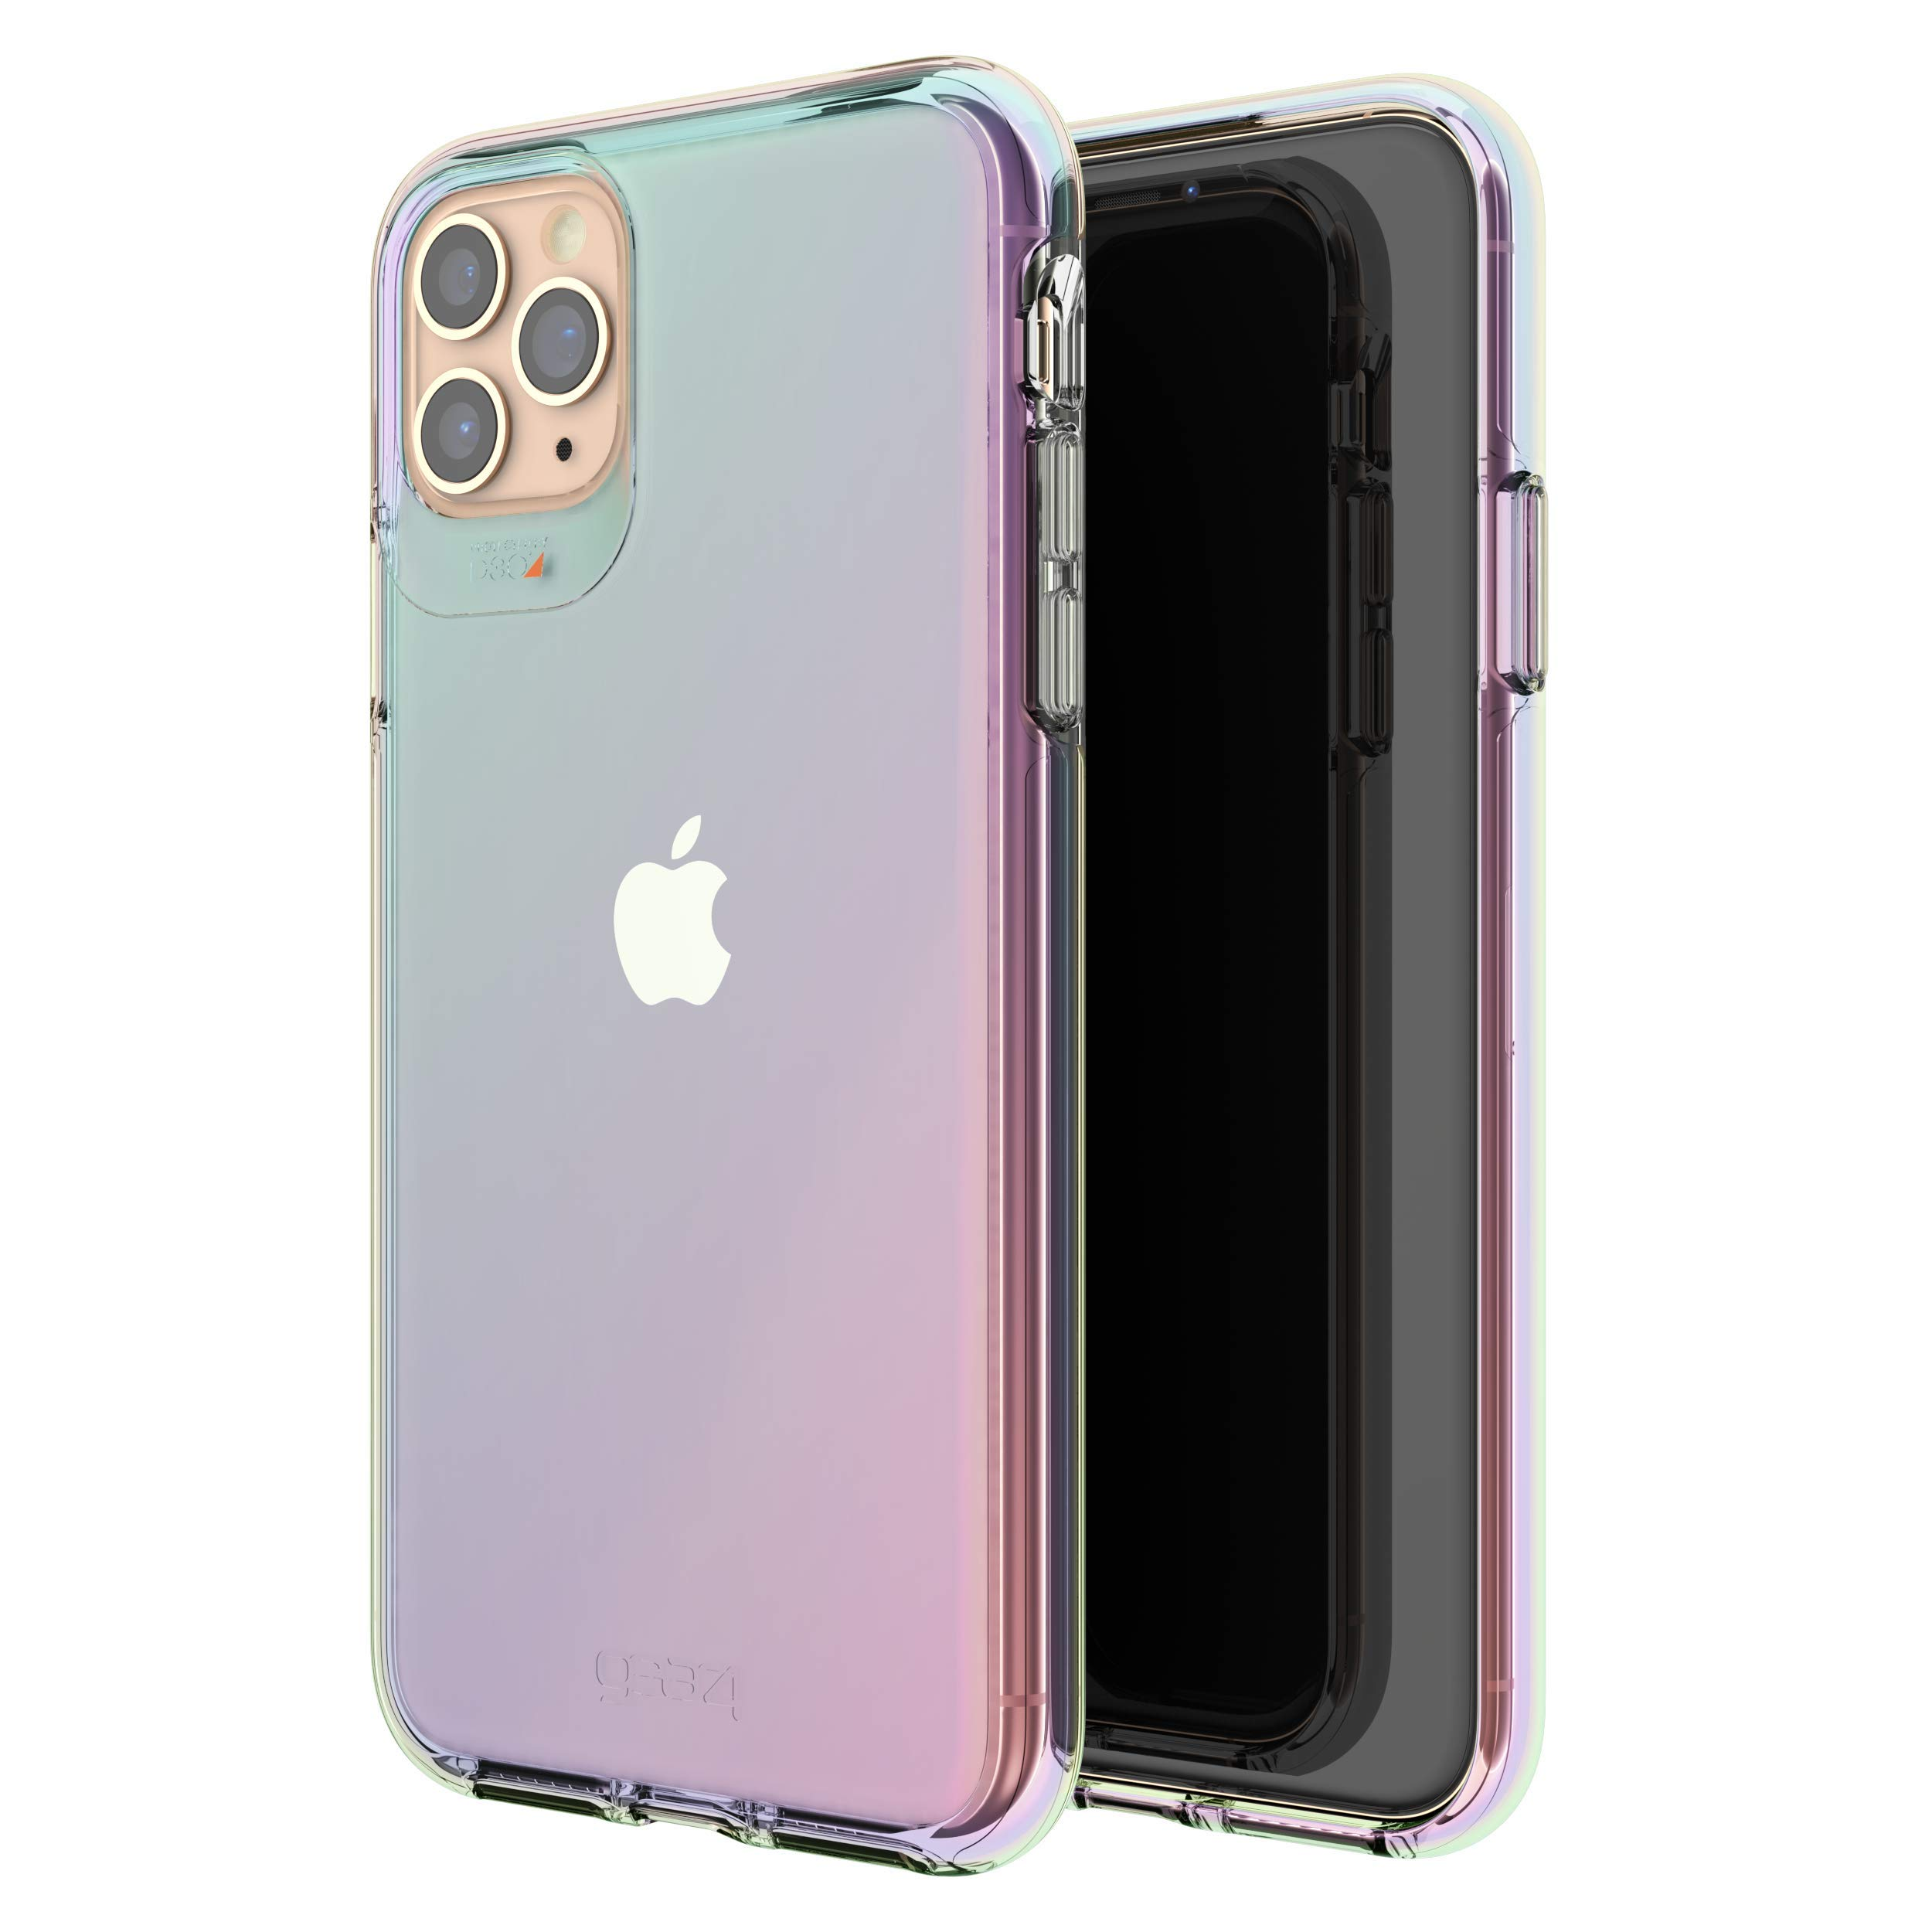 Gear4 Crystal Palace Iridescent Compatible with iPhone 11 Pro Max Case, Advanced Impact Protection with Integrated D3O Technology, Anti-Yellowing, Phone Cover – Iridescent